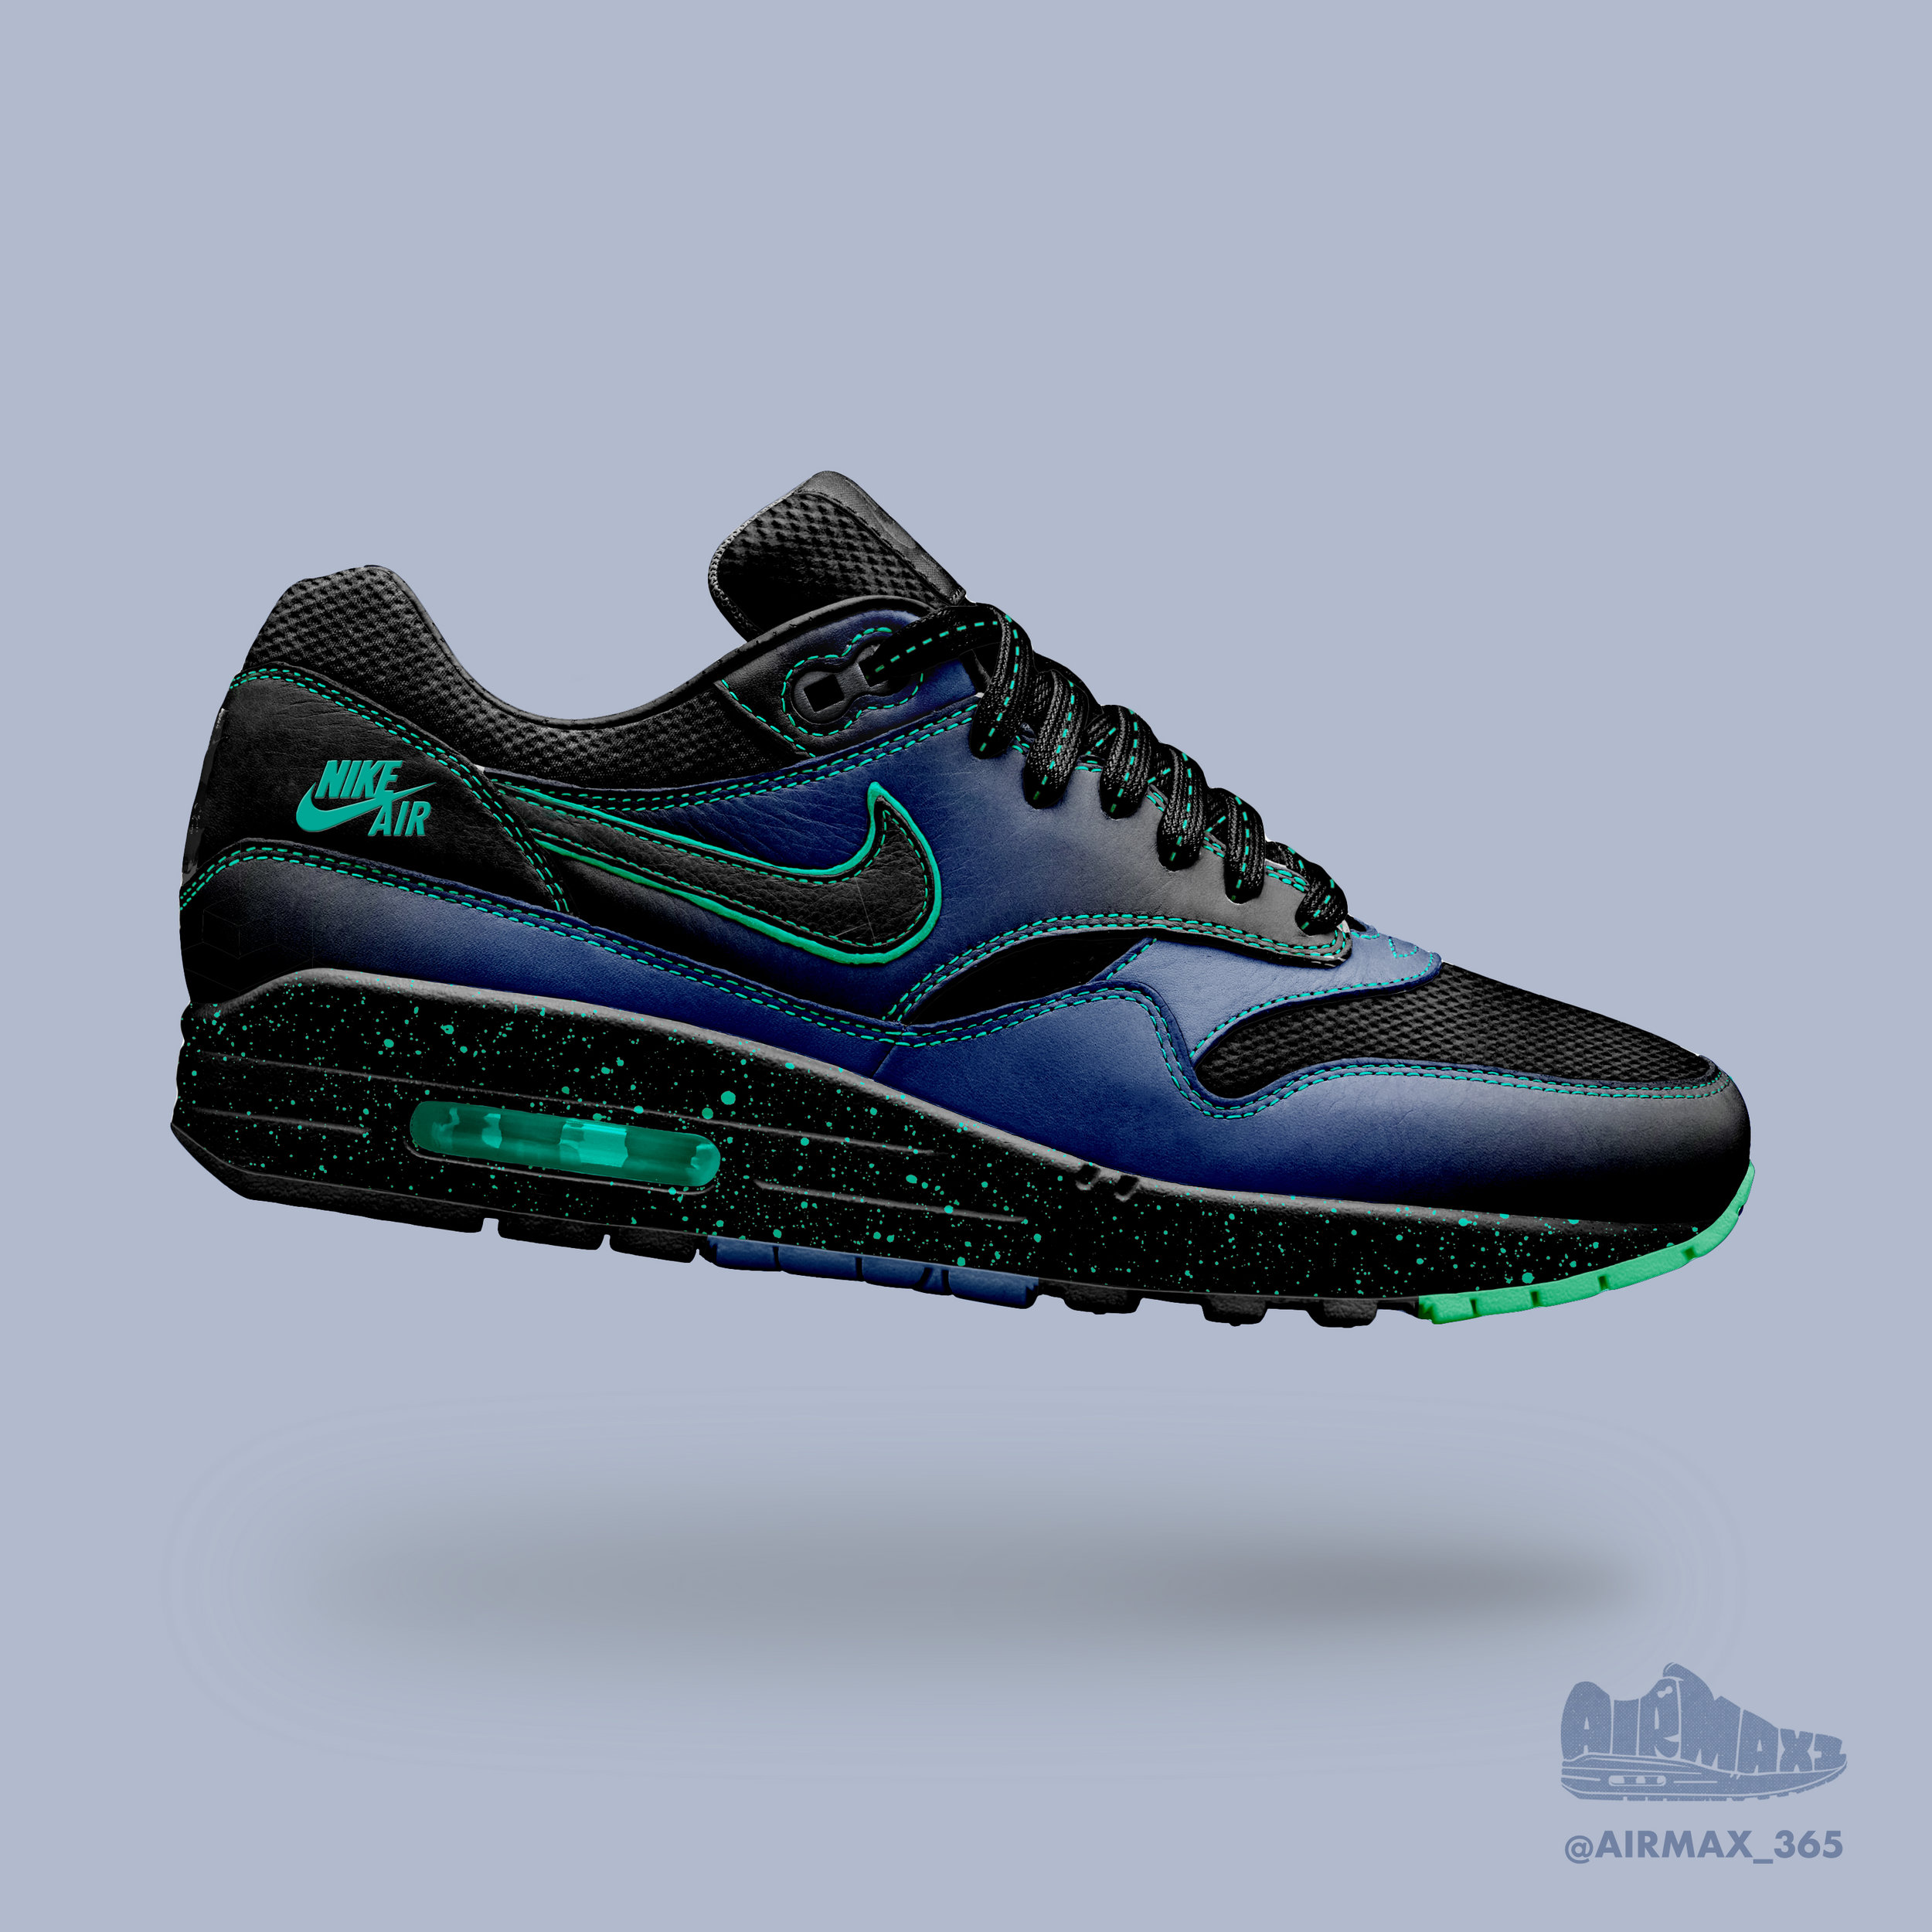 Day 215: Air Max 1 Electric Feel